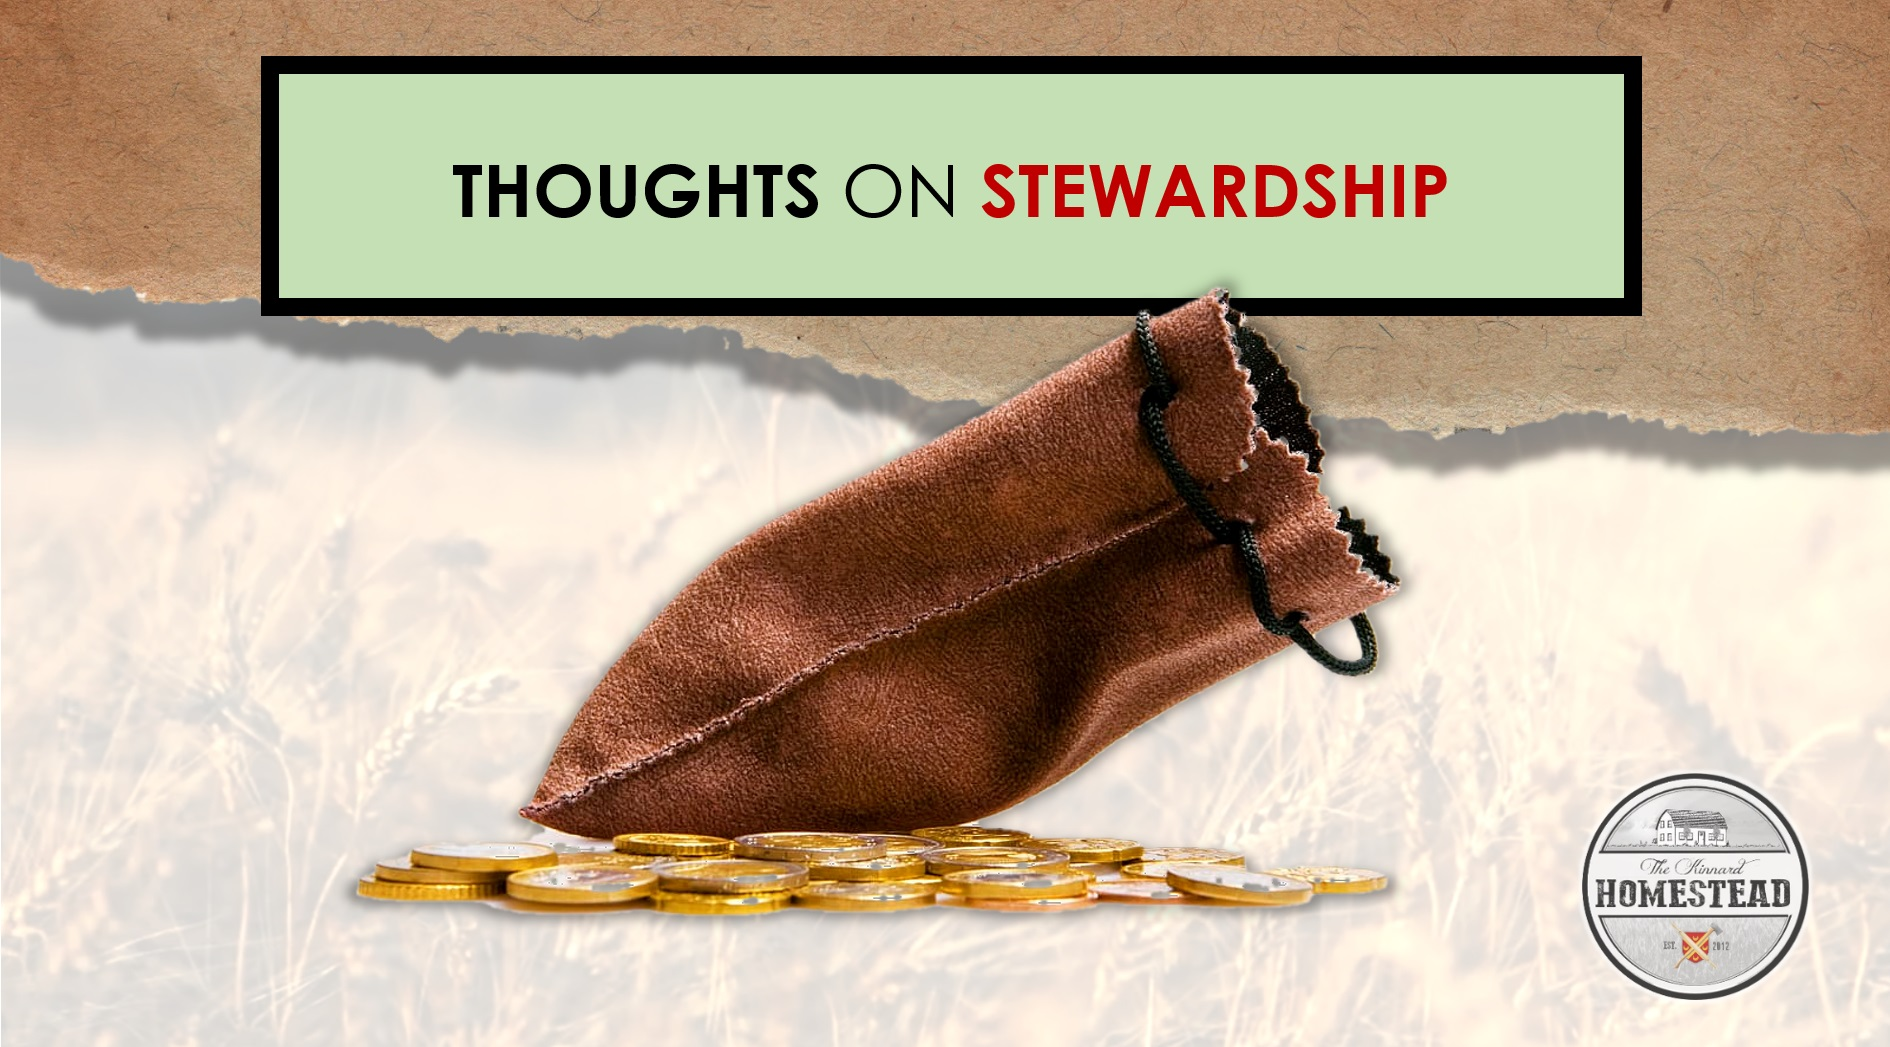 Thoughts on Stewardship